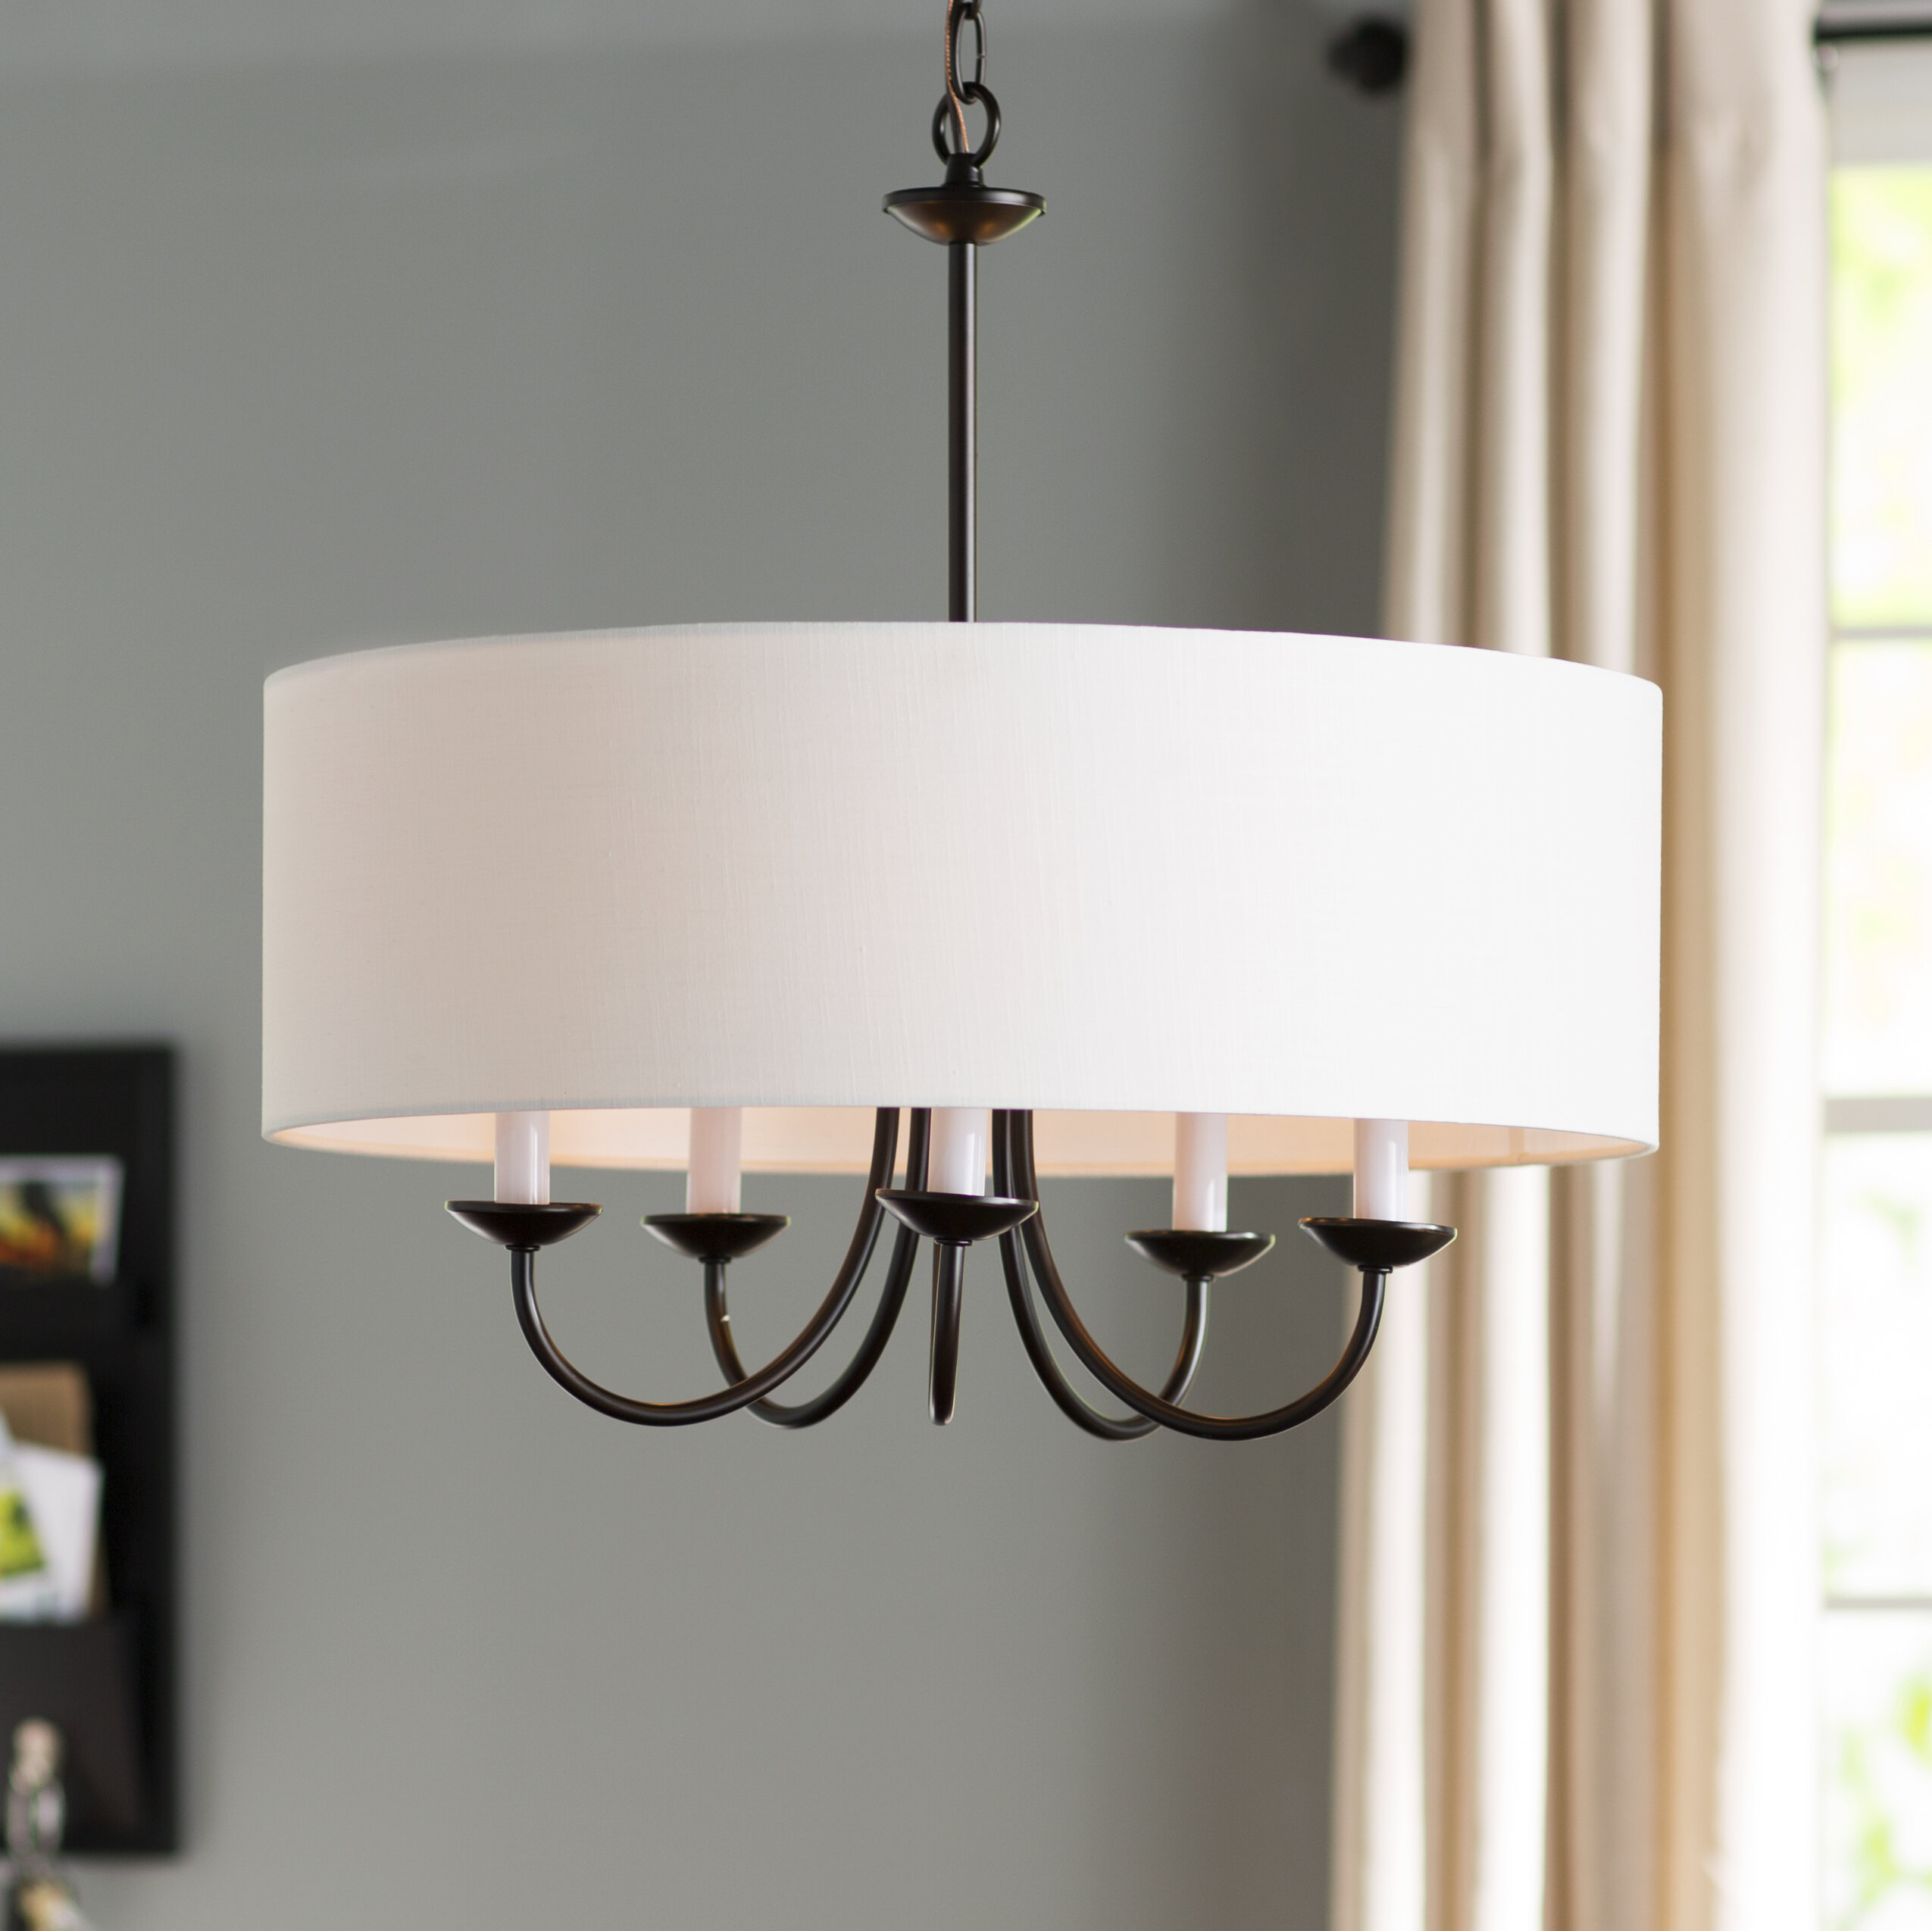 Andover mills burton 5 light drum chandelier reviews wayfair burton 5 light drum chandelier arubaitofo Image collections